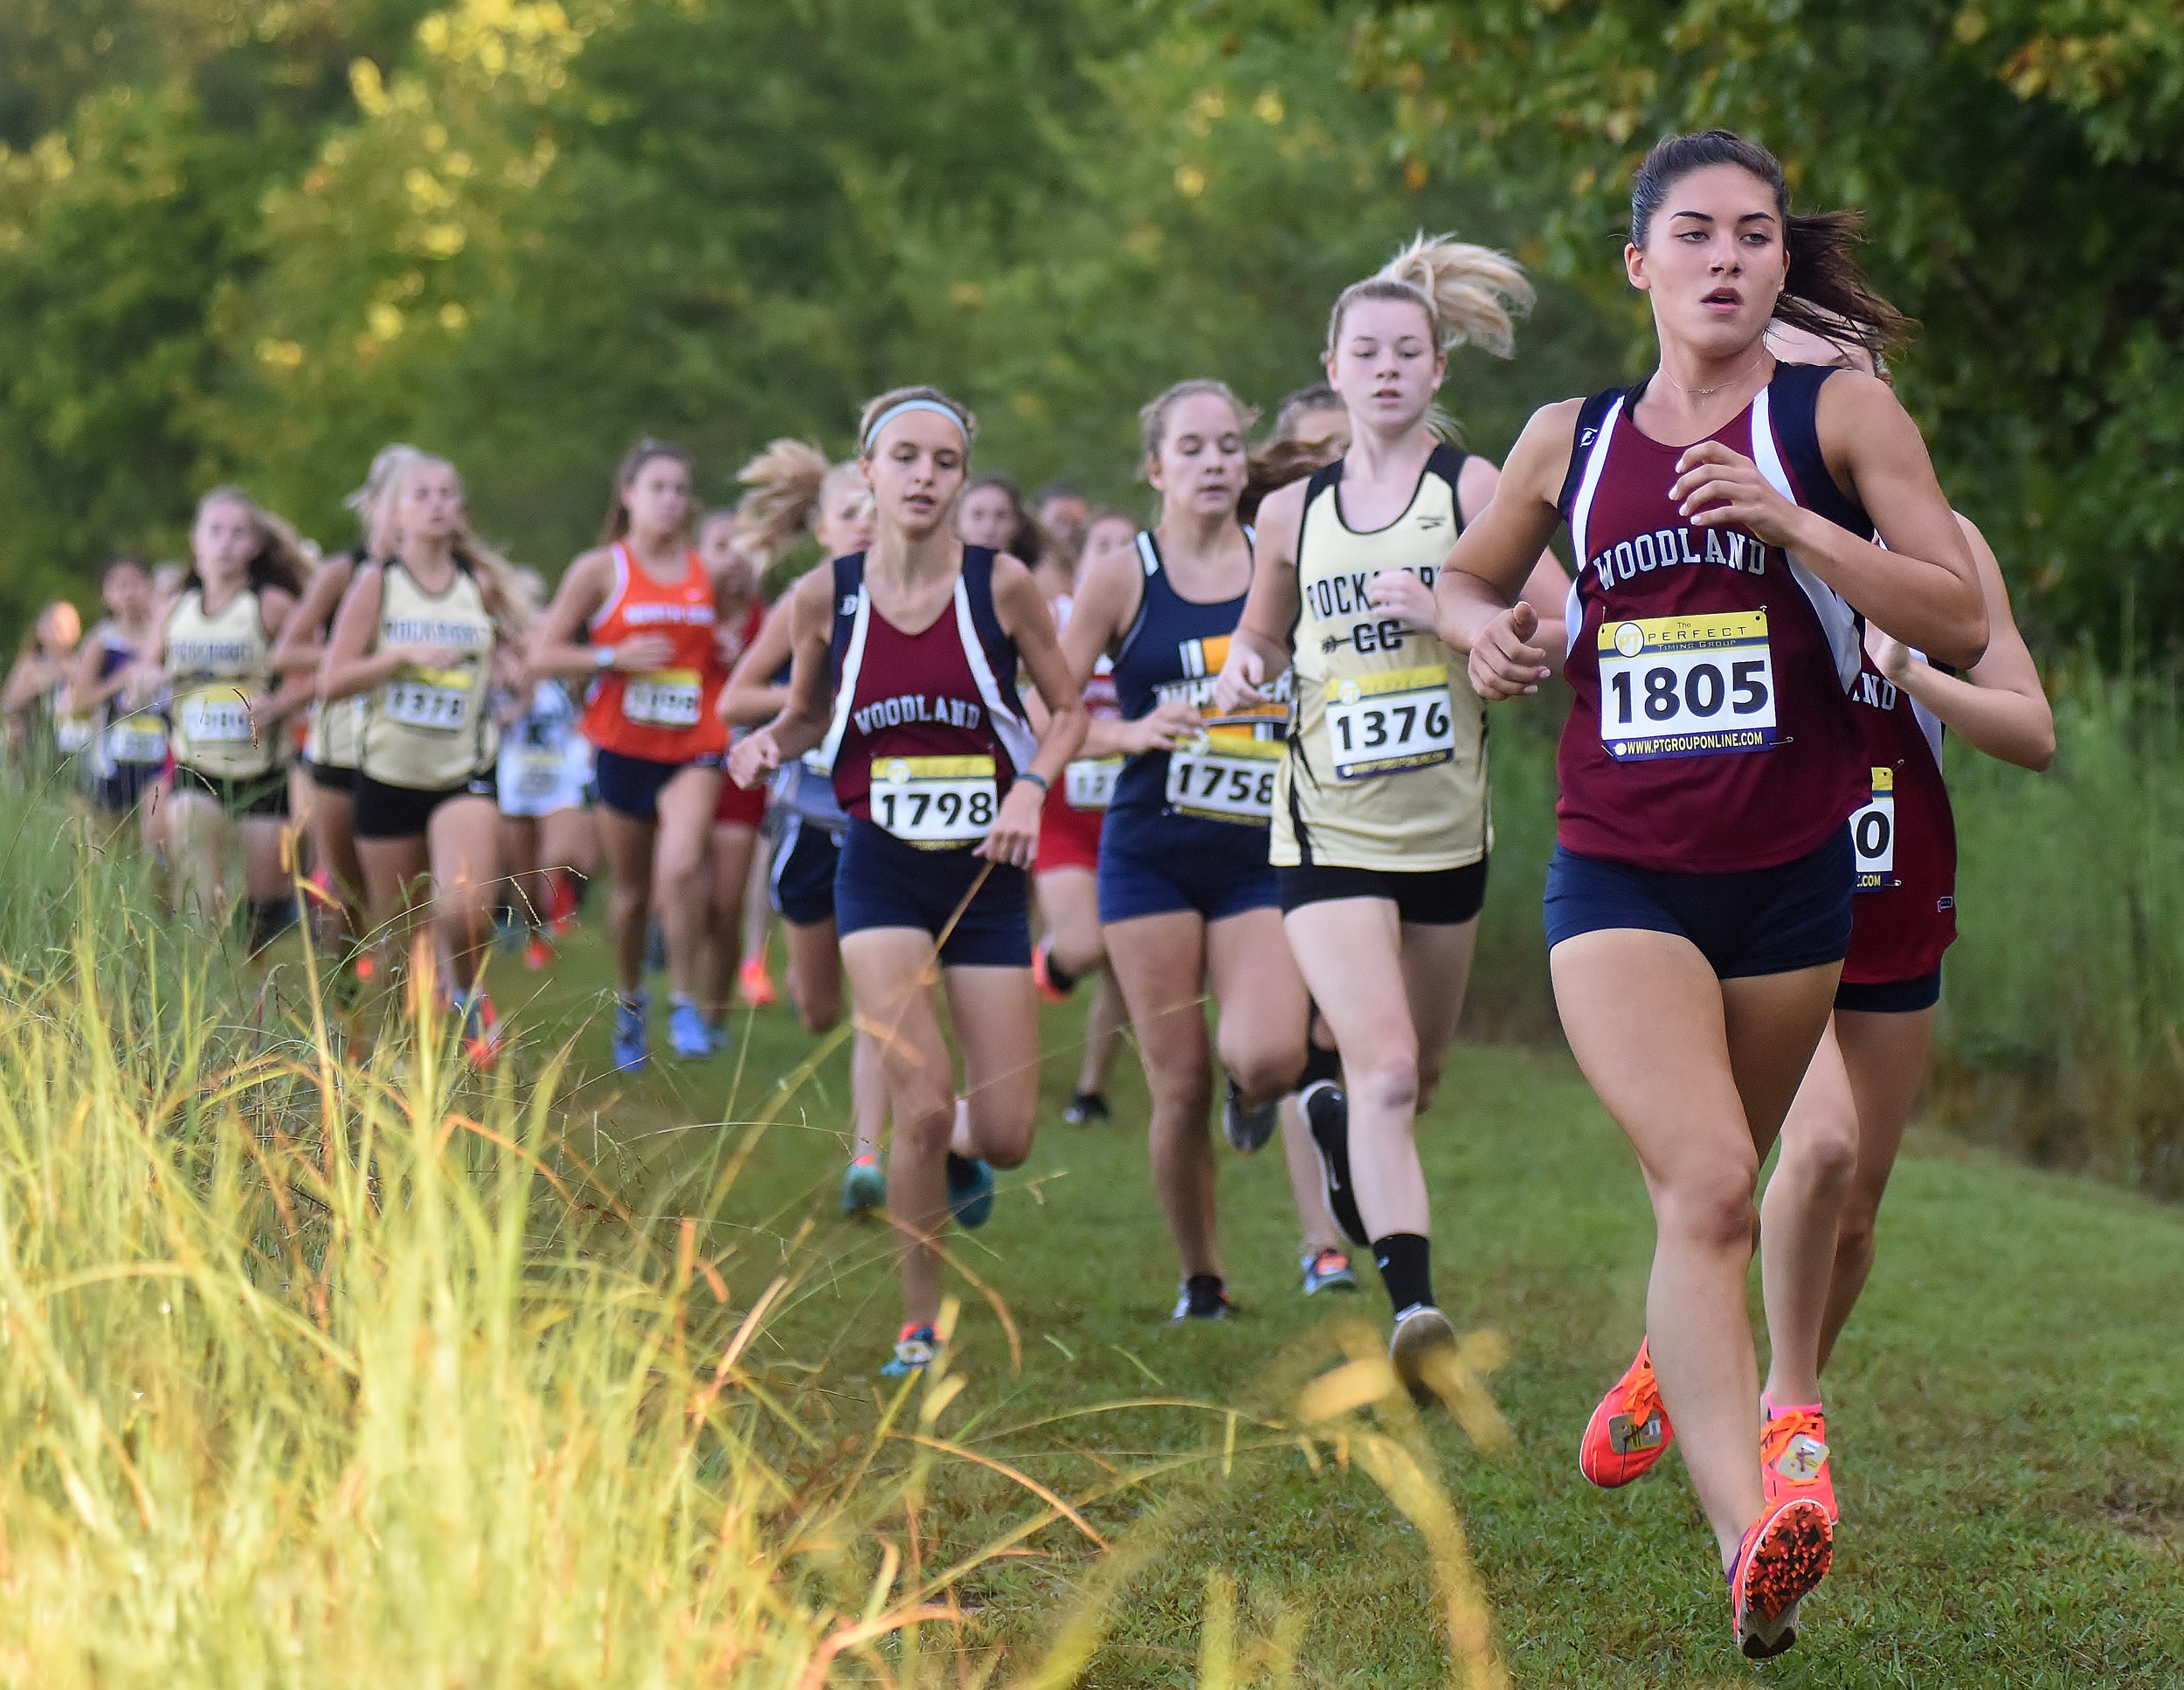 Woodland's McKenna Trapheagen leads the pack during Saturday's Run at the Rock hosted by the Wildcats. Trapheagen won the event in convincing fashion, finishing 52 seconds ahead of her teammate and second-place finisher Carli Clymer.